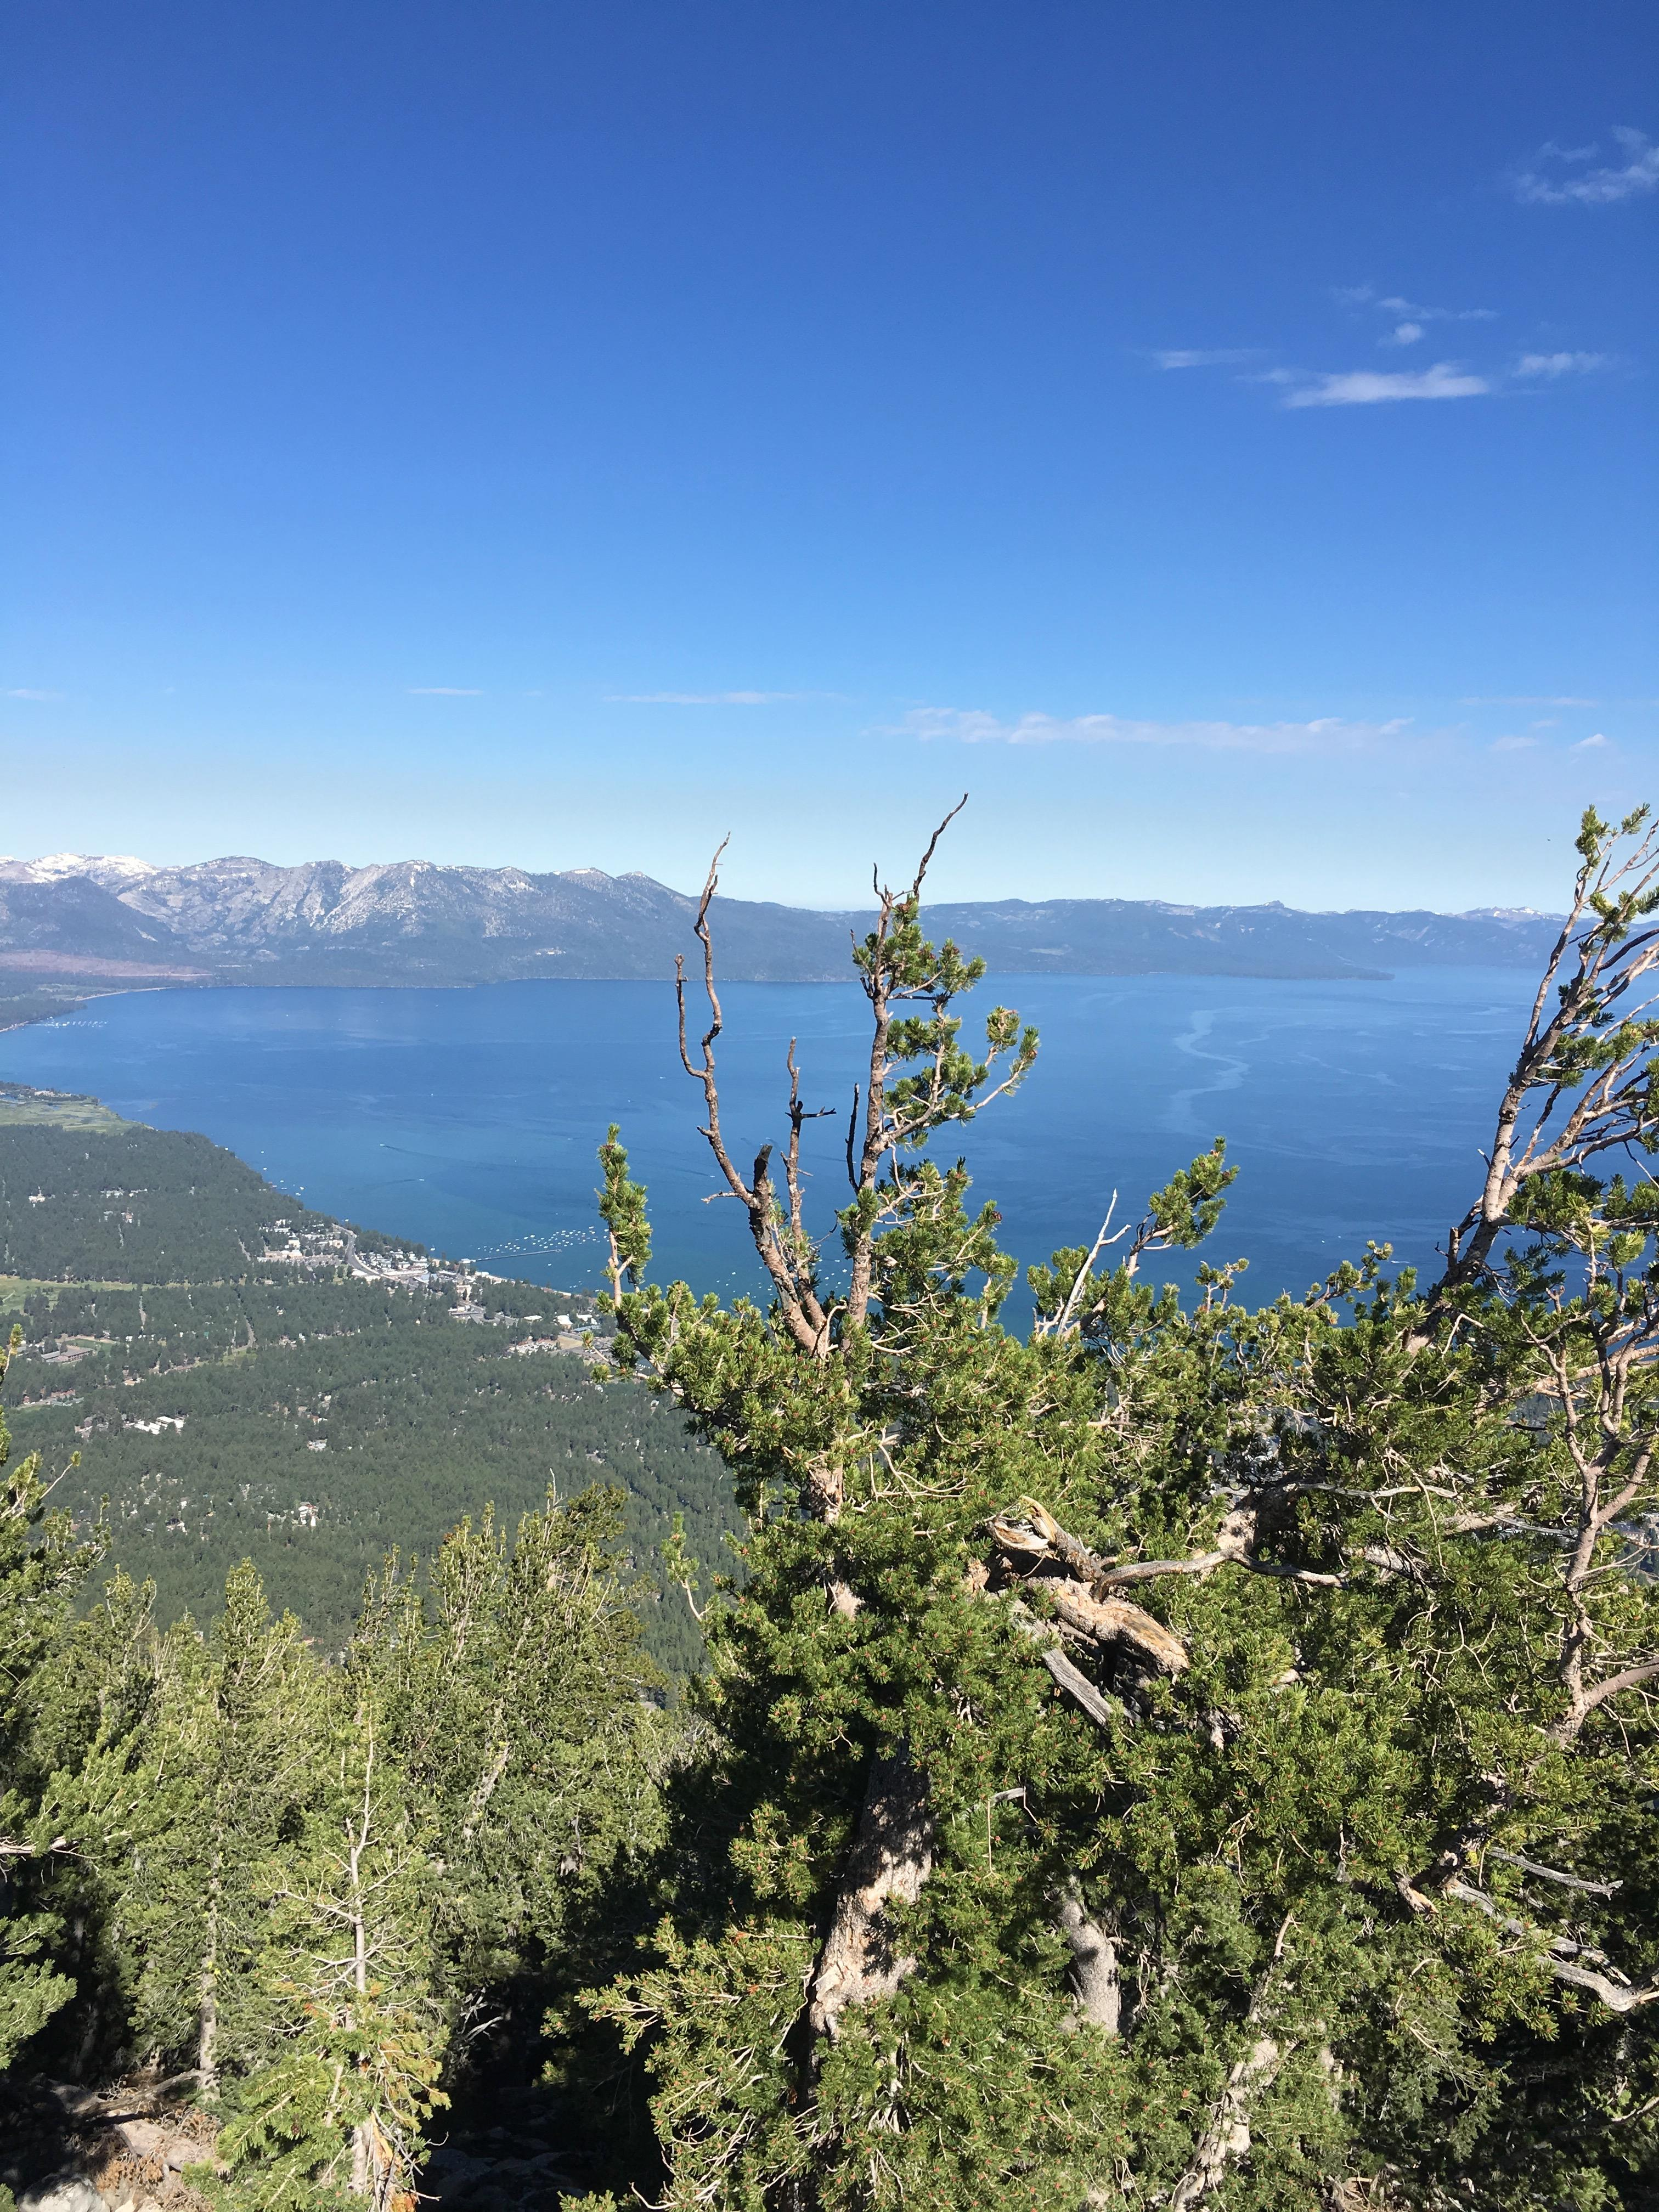 The lake from the top of heavenly